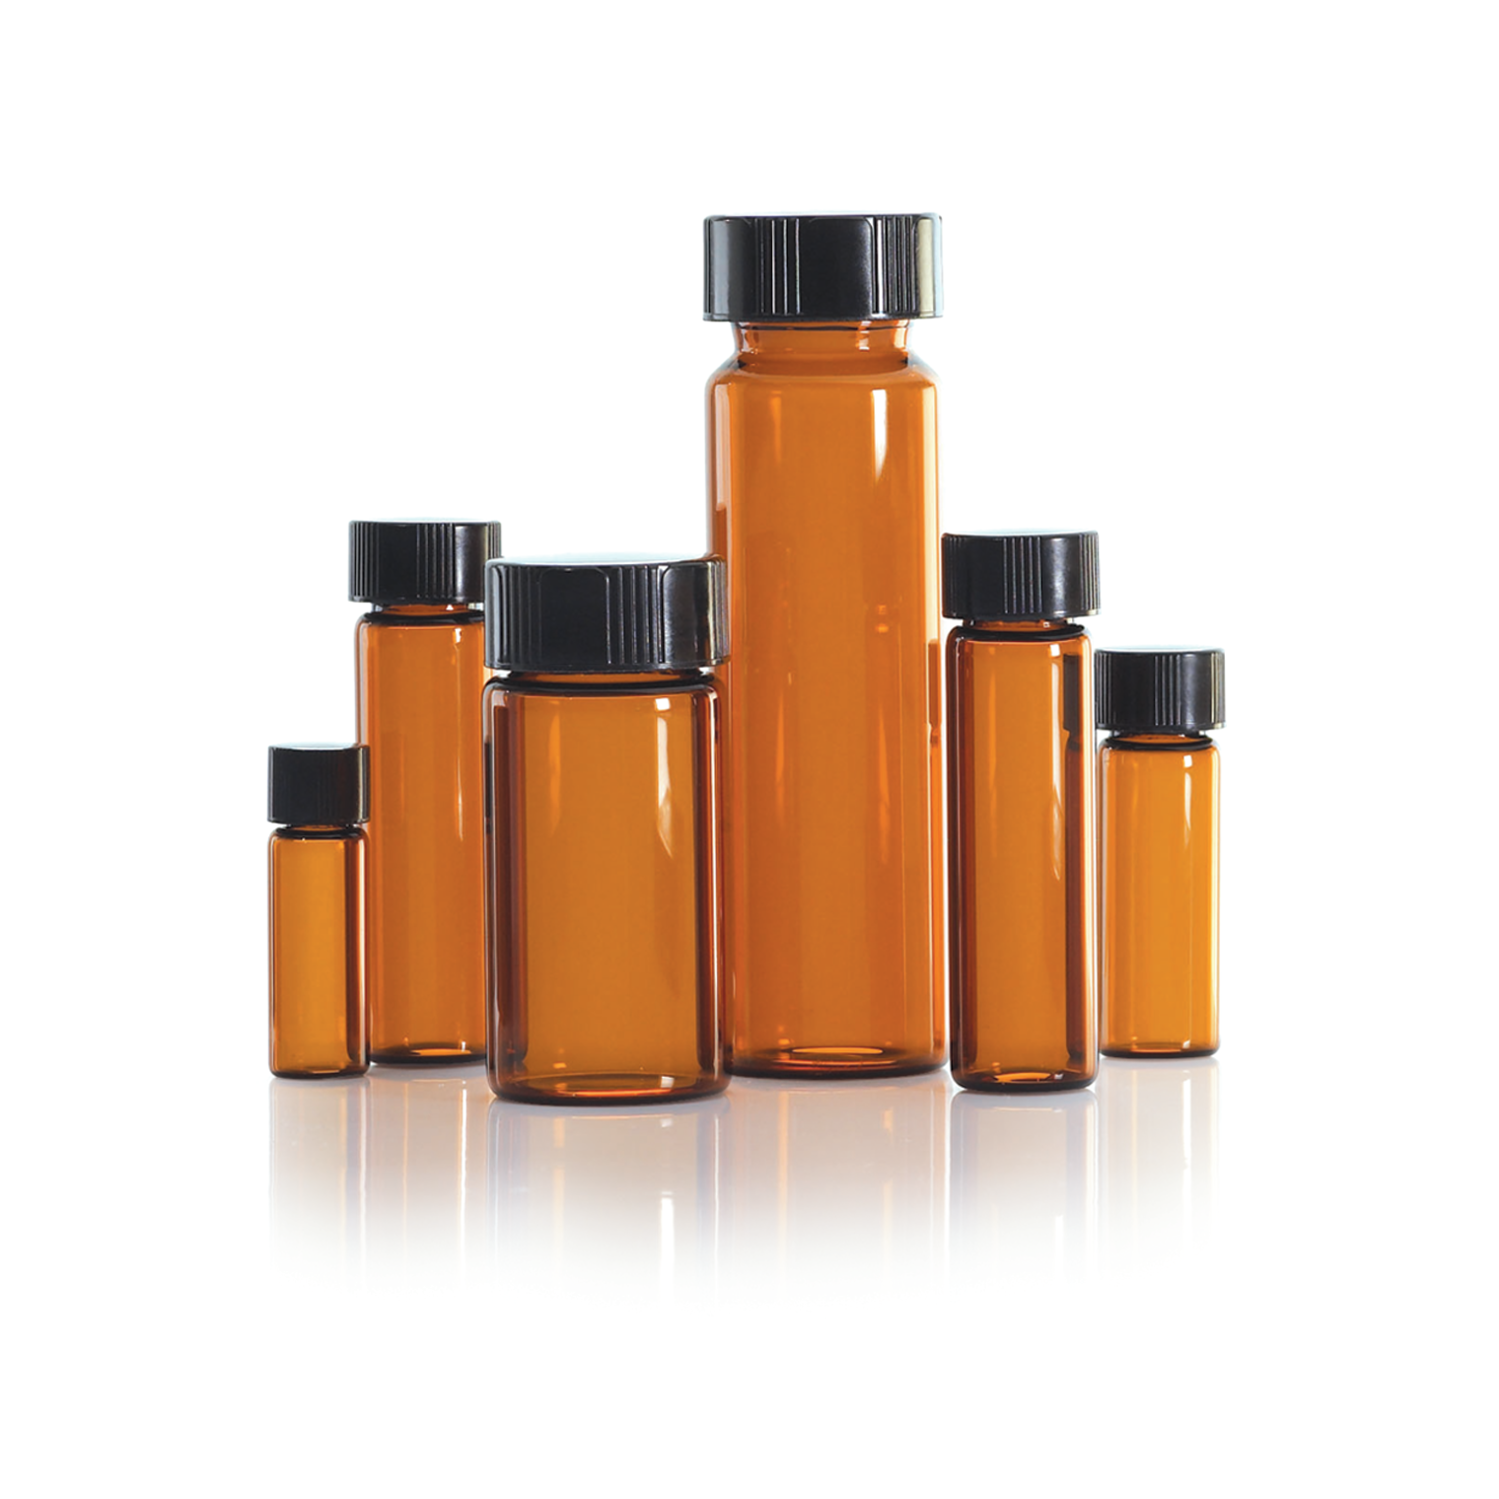 WHEATON® LAB FILE® Sample Vials, 40mL Standard Vials With Caps Attached, Amber, 14B Rubber Septa